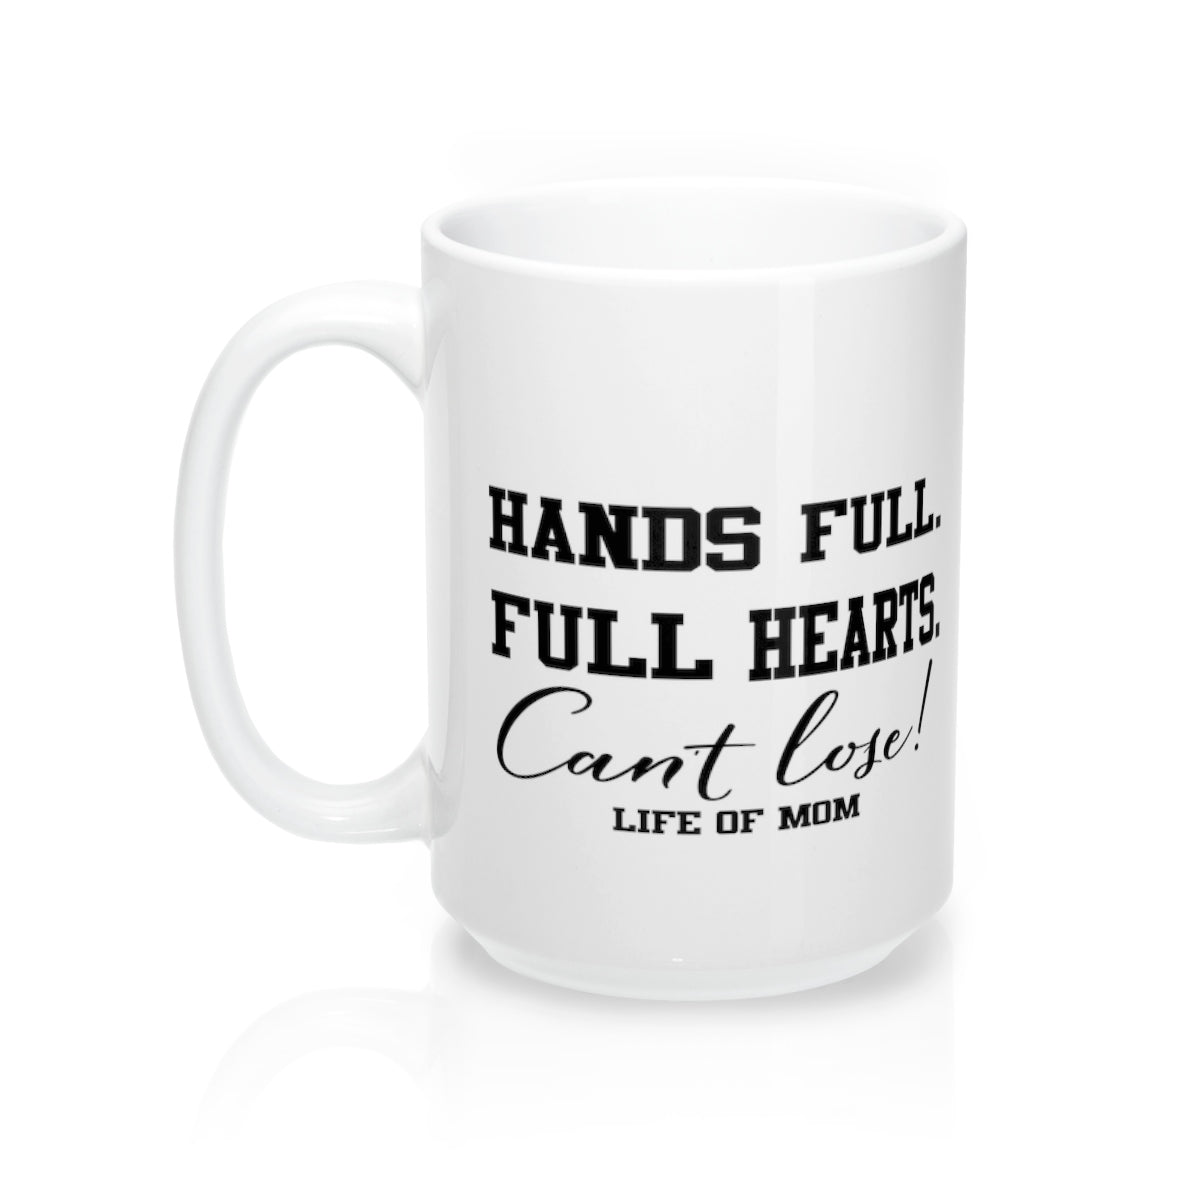 Life of Mom - Hands Full. Full Hearts. Can't Lose! Mug